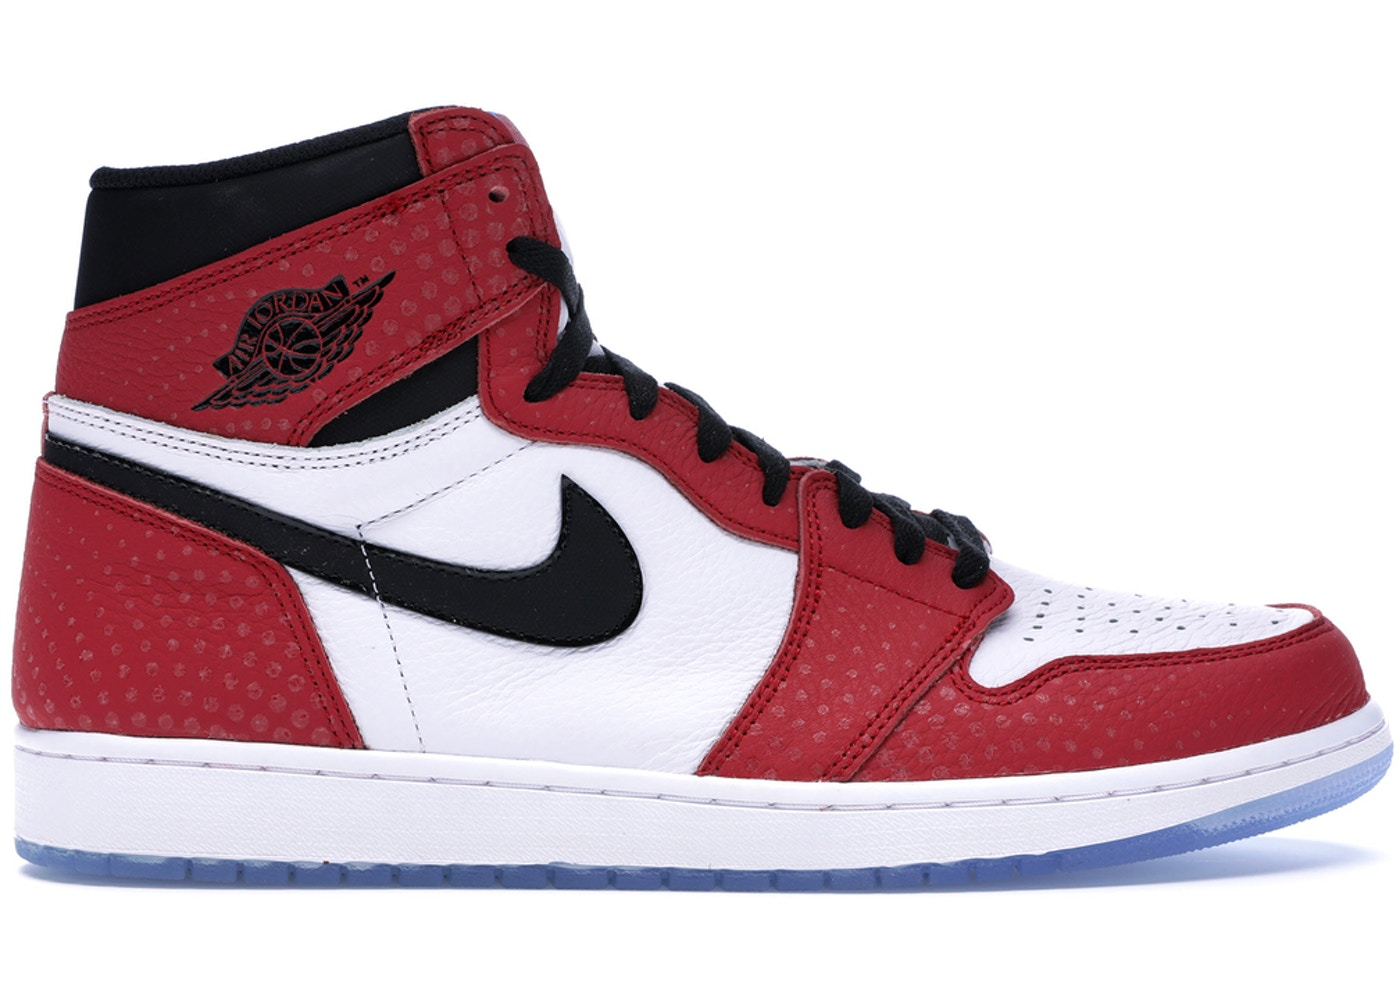 new product 09acc a5623 Jordan 1 Retro High Spider-Man Origin Story